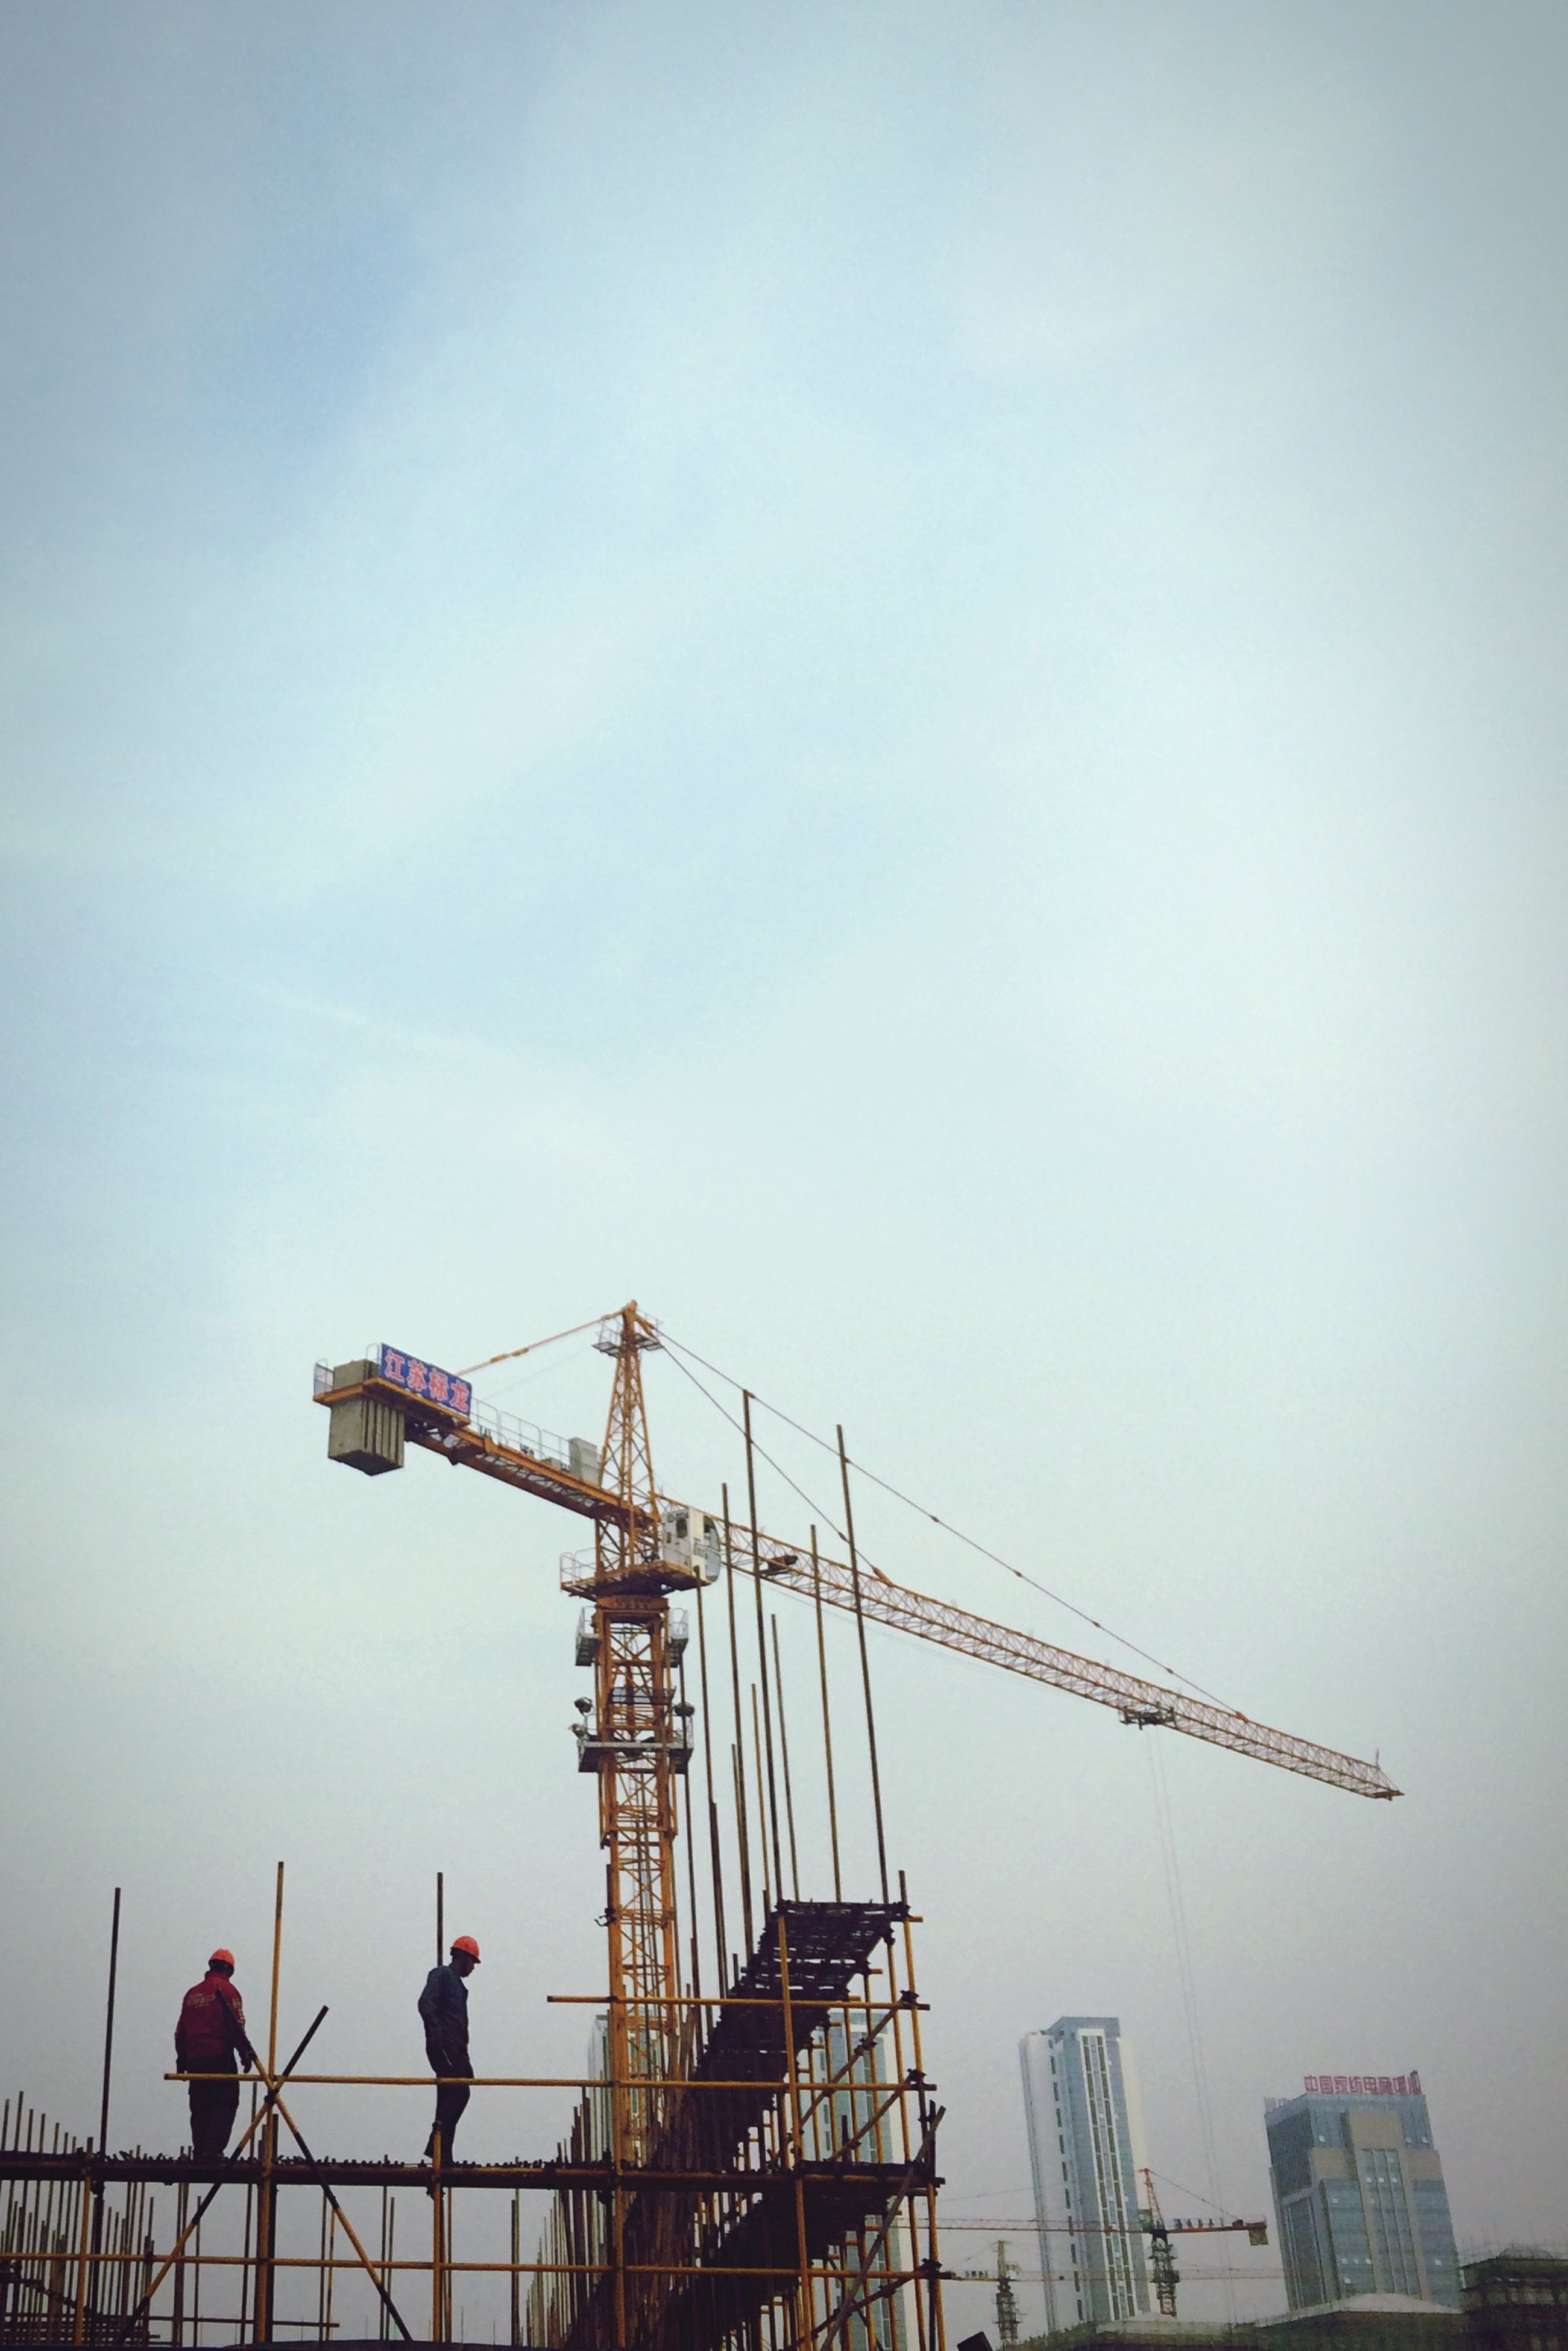 crane - construction machinery, construction site, development, crane, built structure, architecture, building exterior, construction, industry, construction industry, low angle view, incomplete, sky, progress, clear sky, tall - high, city, copy space, commercial dock, outdoors